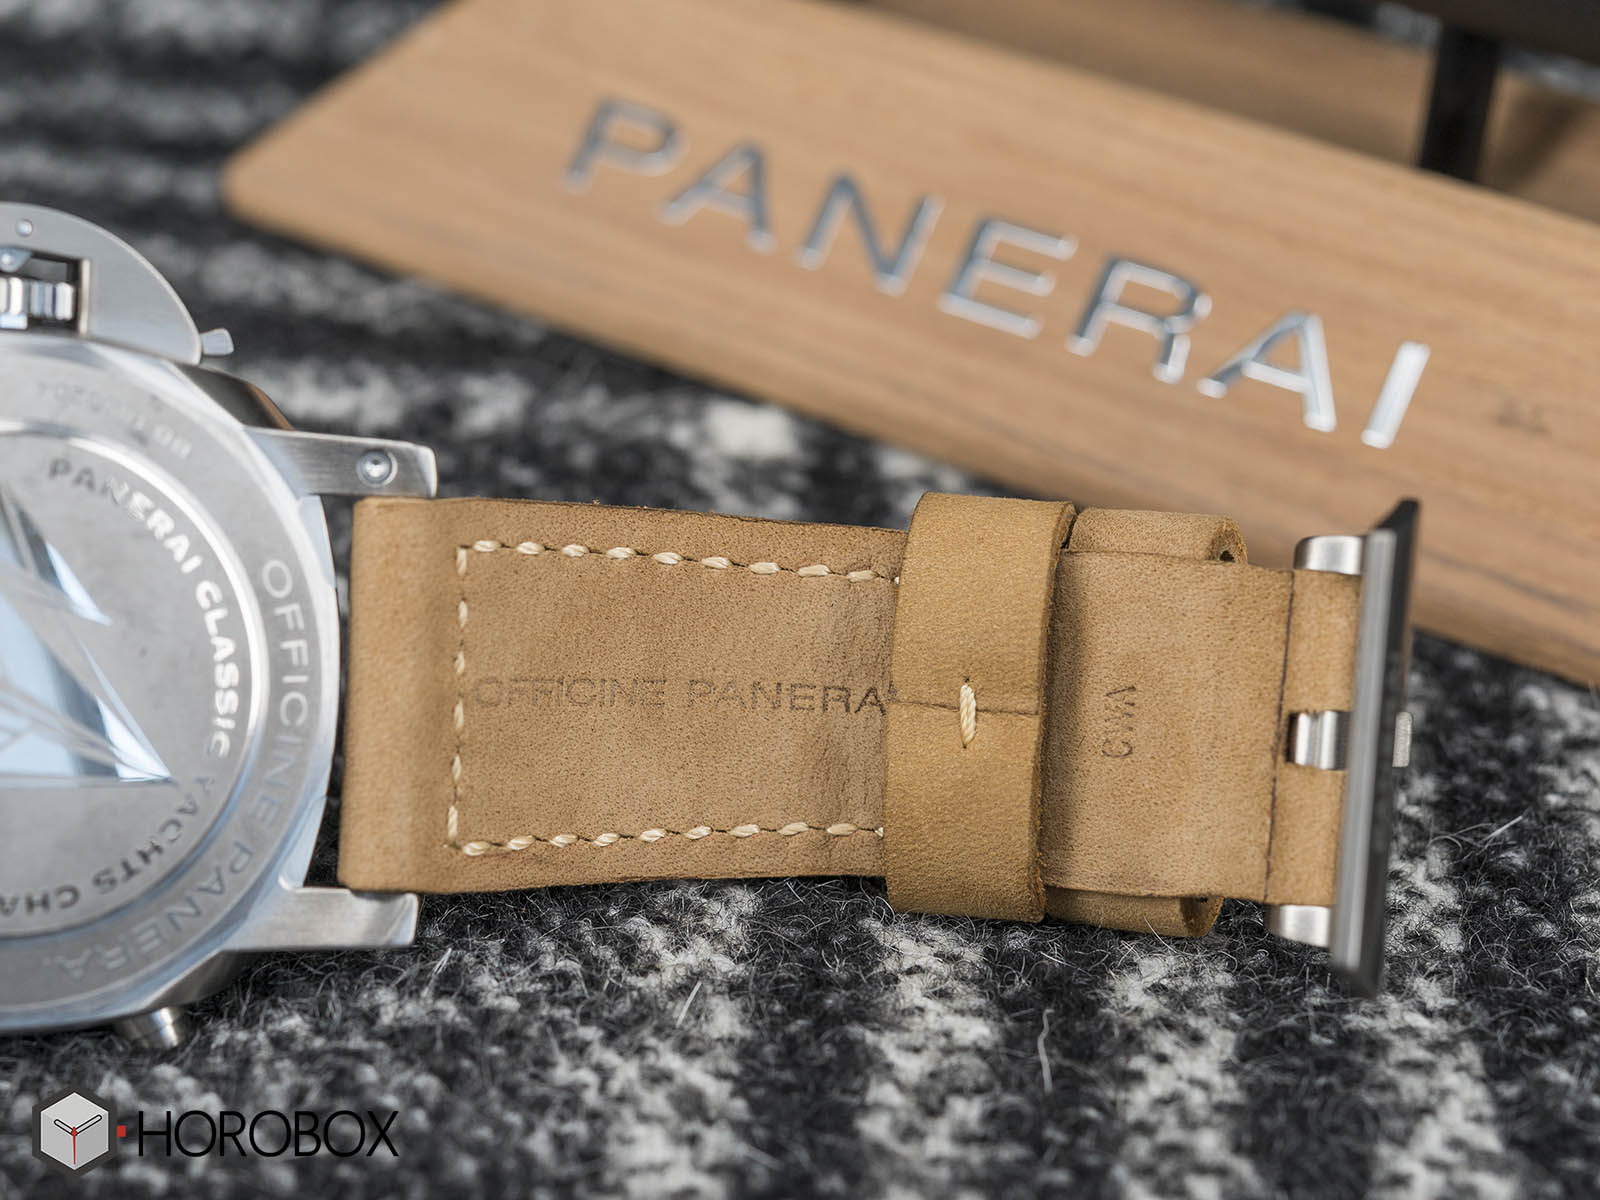 panerai-luminor-1950-pcyc-regatta-pam00652-6.jpg